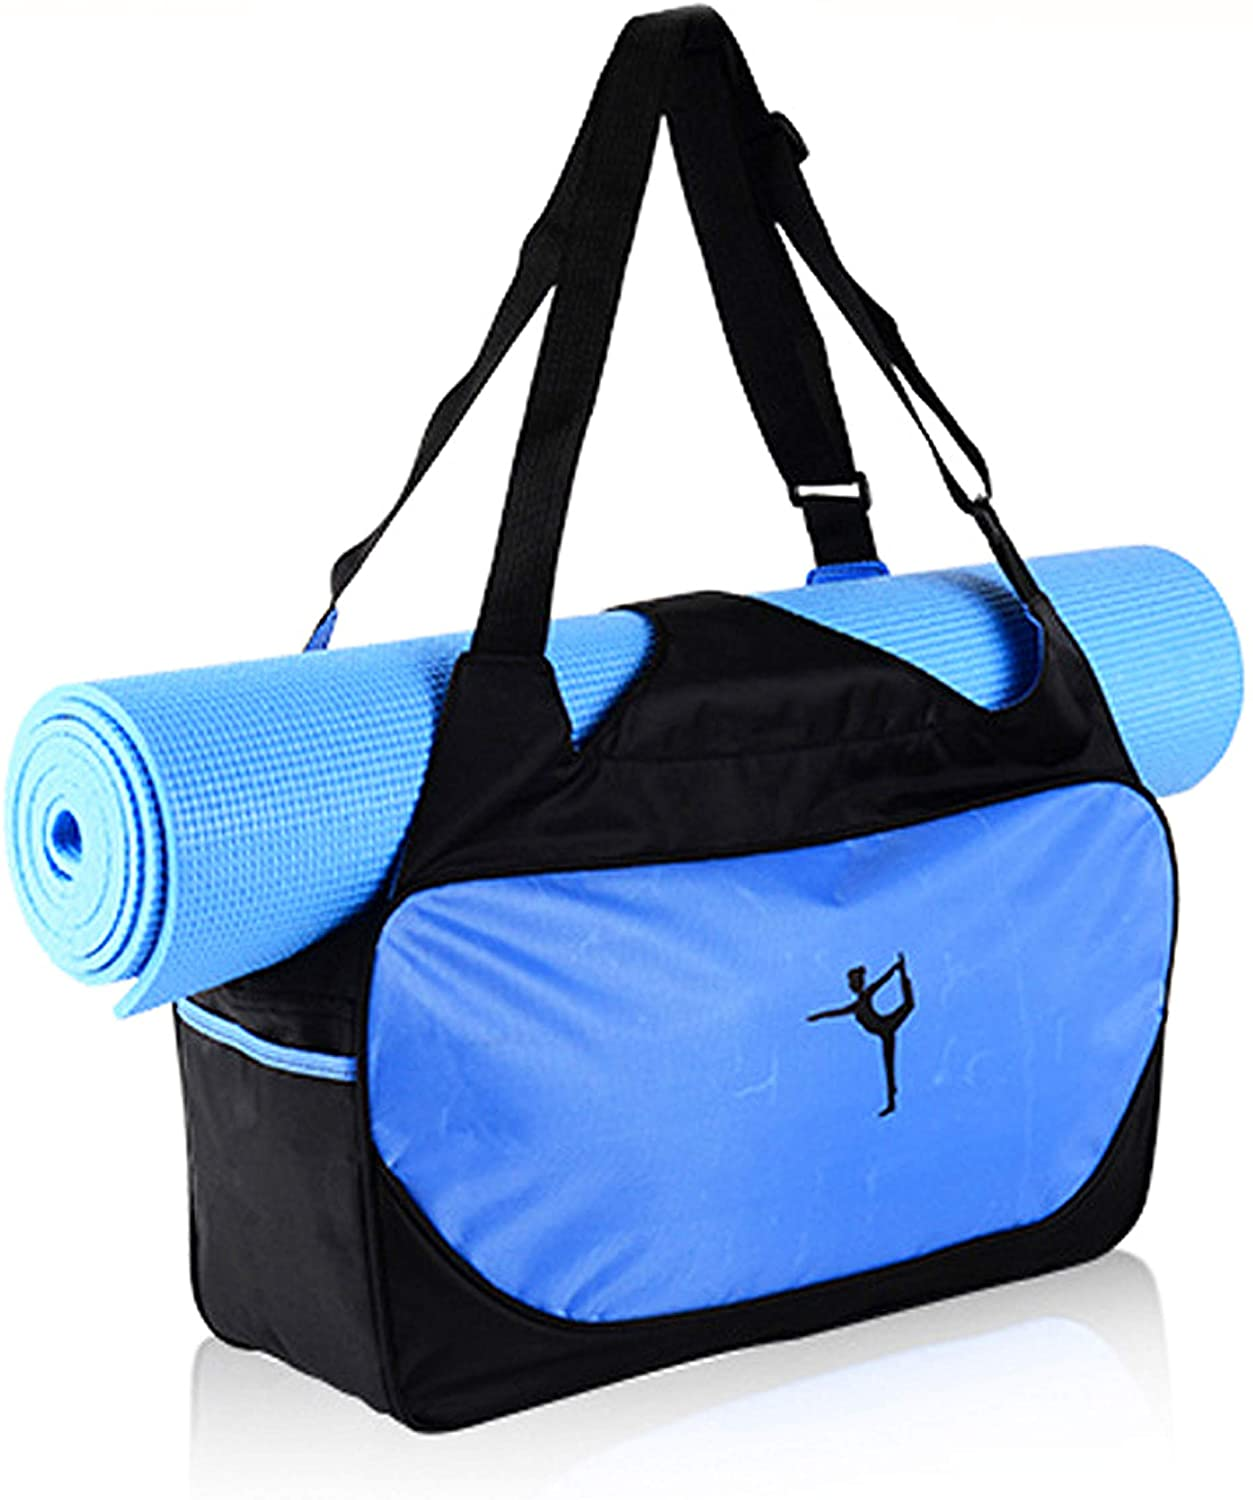 Golden Tech Full Zip Yoga Mat Bags, Waterproof Gym Bag with Yoga Mat Holder, Nylon Basic Tote for Sport Gym TravelWorkout, Large